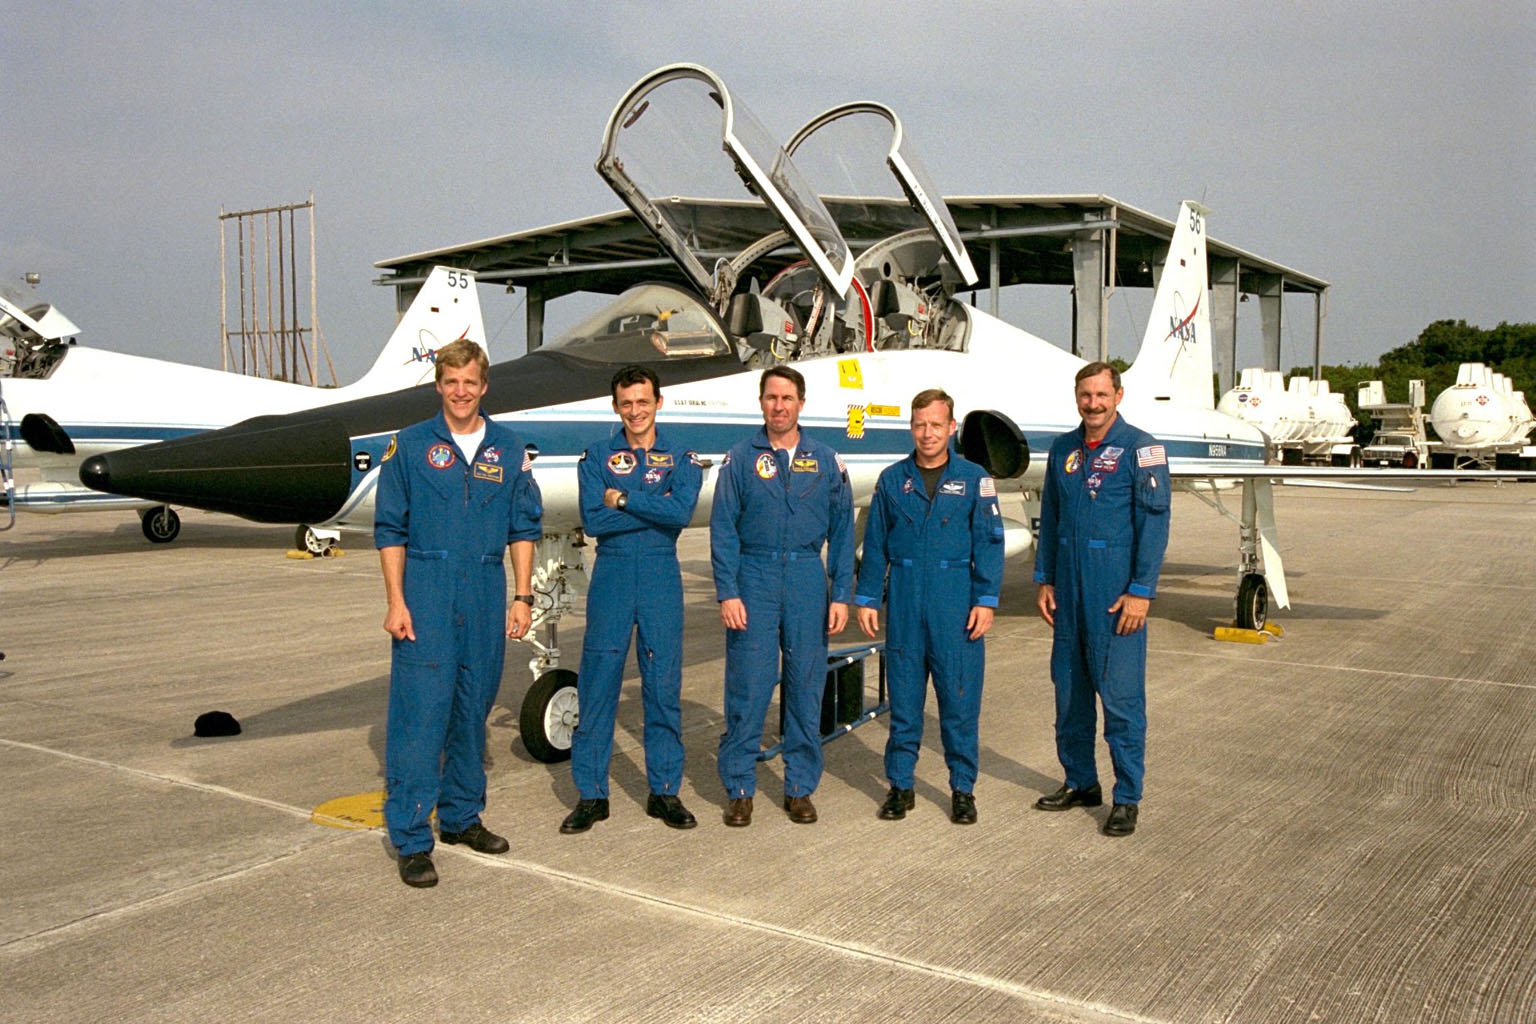 Members of the STS-95 crew pose in front of one of the T-38 jet aircraft that brought them to the Shuttle Landing Facility at KSC. From left, the members are Mission Specialist Scott E. Parazynski, M.D.; Pedro Duque of Spain, representing the European Space Agency (ESA); Mission Specialist Stephen K. Robinson, Ph.D.; Pilot Steven W. Lindsey; and Commander Curtis L. Brown Jr. The crew is participating in a familiarization tour of the SPACEHAB module and the equipment that will fly with them on the Space Shuttle Discovery scheduled to launch Oct. 29, 1998. The mission includes research payloads such as the Spartan solar-observing deployable spacecraft, the Hubble Space Telescope Orbital Systems Test Platform, the International Extreme Ultraviolet Hitchhiker, as well as the SPACEHAB single module with experiments on space flight and the aging process